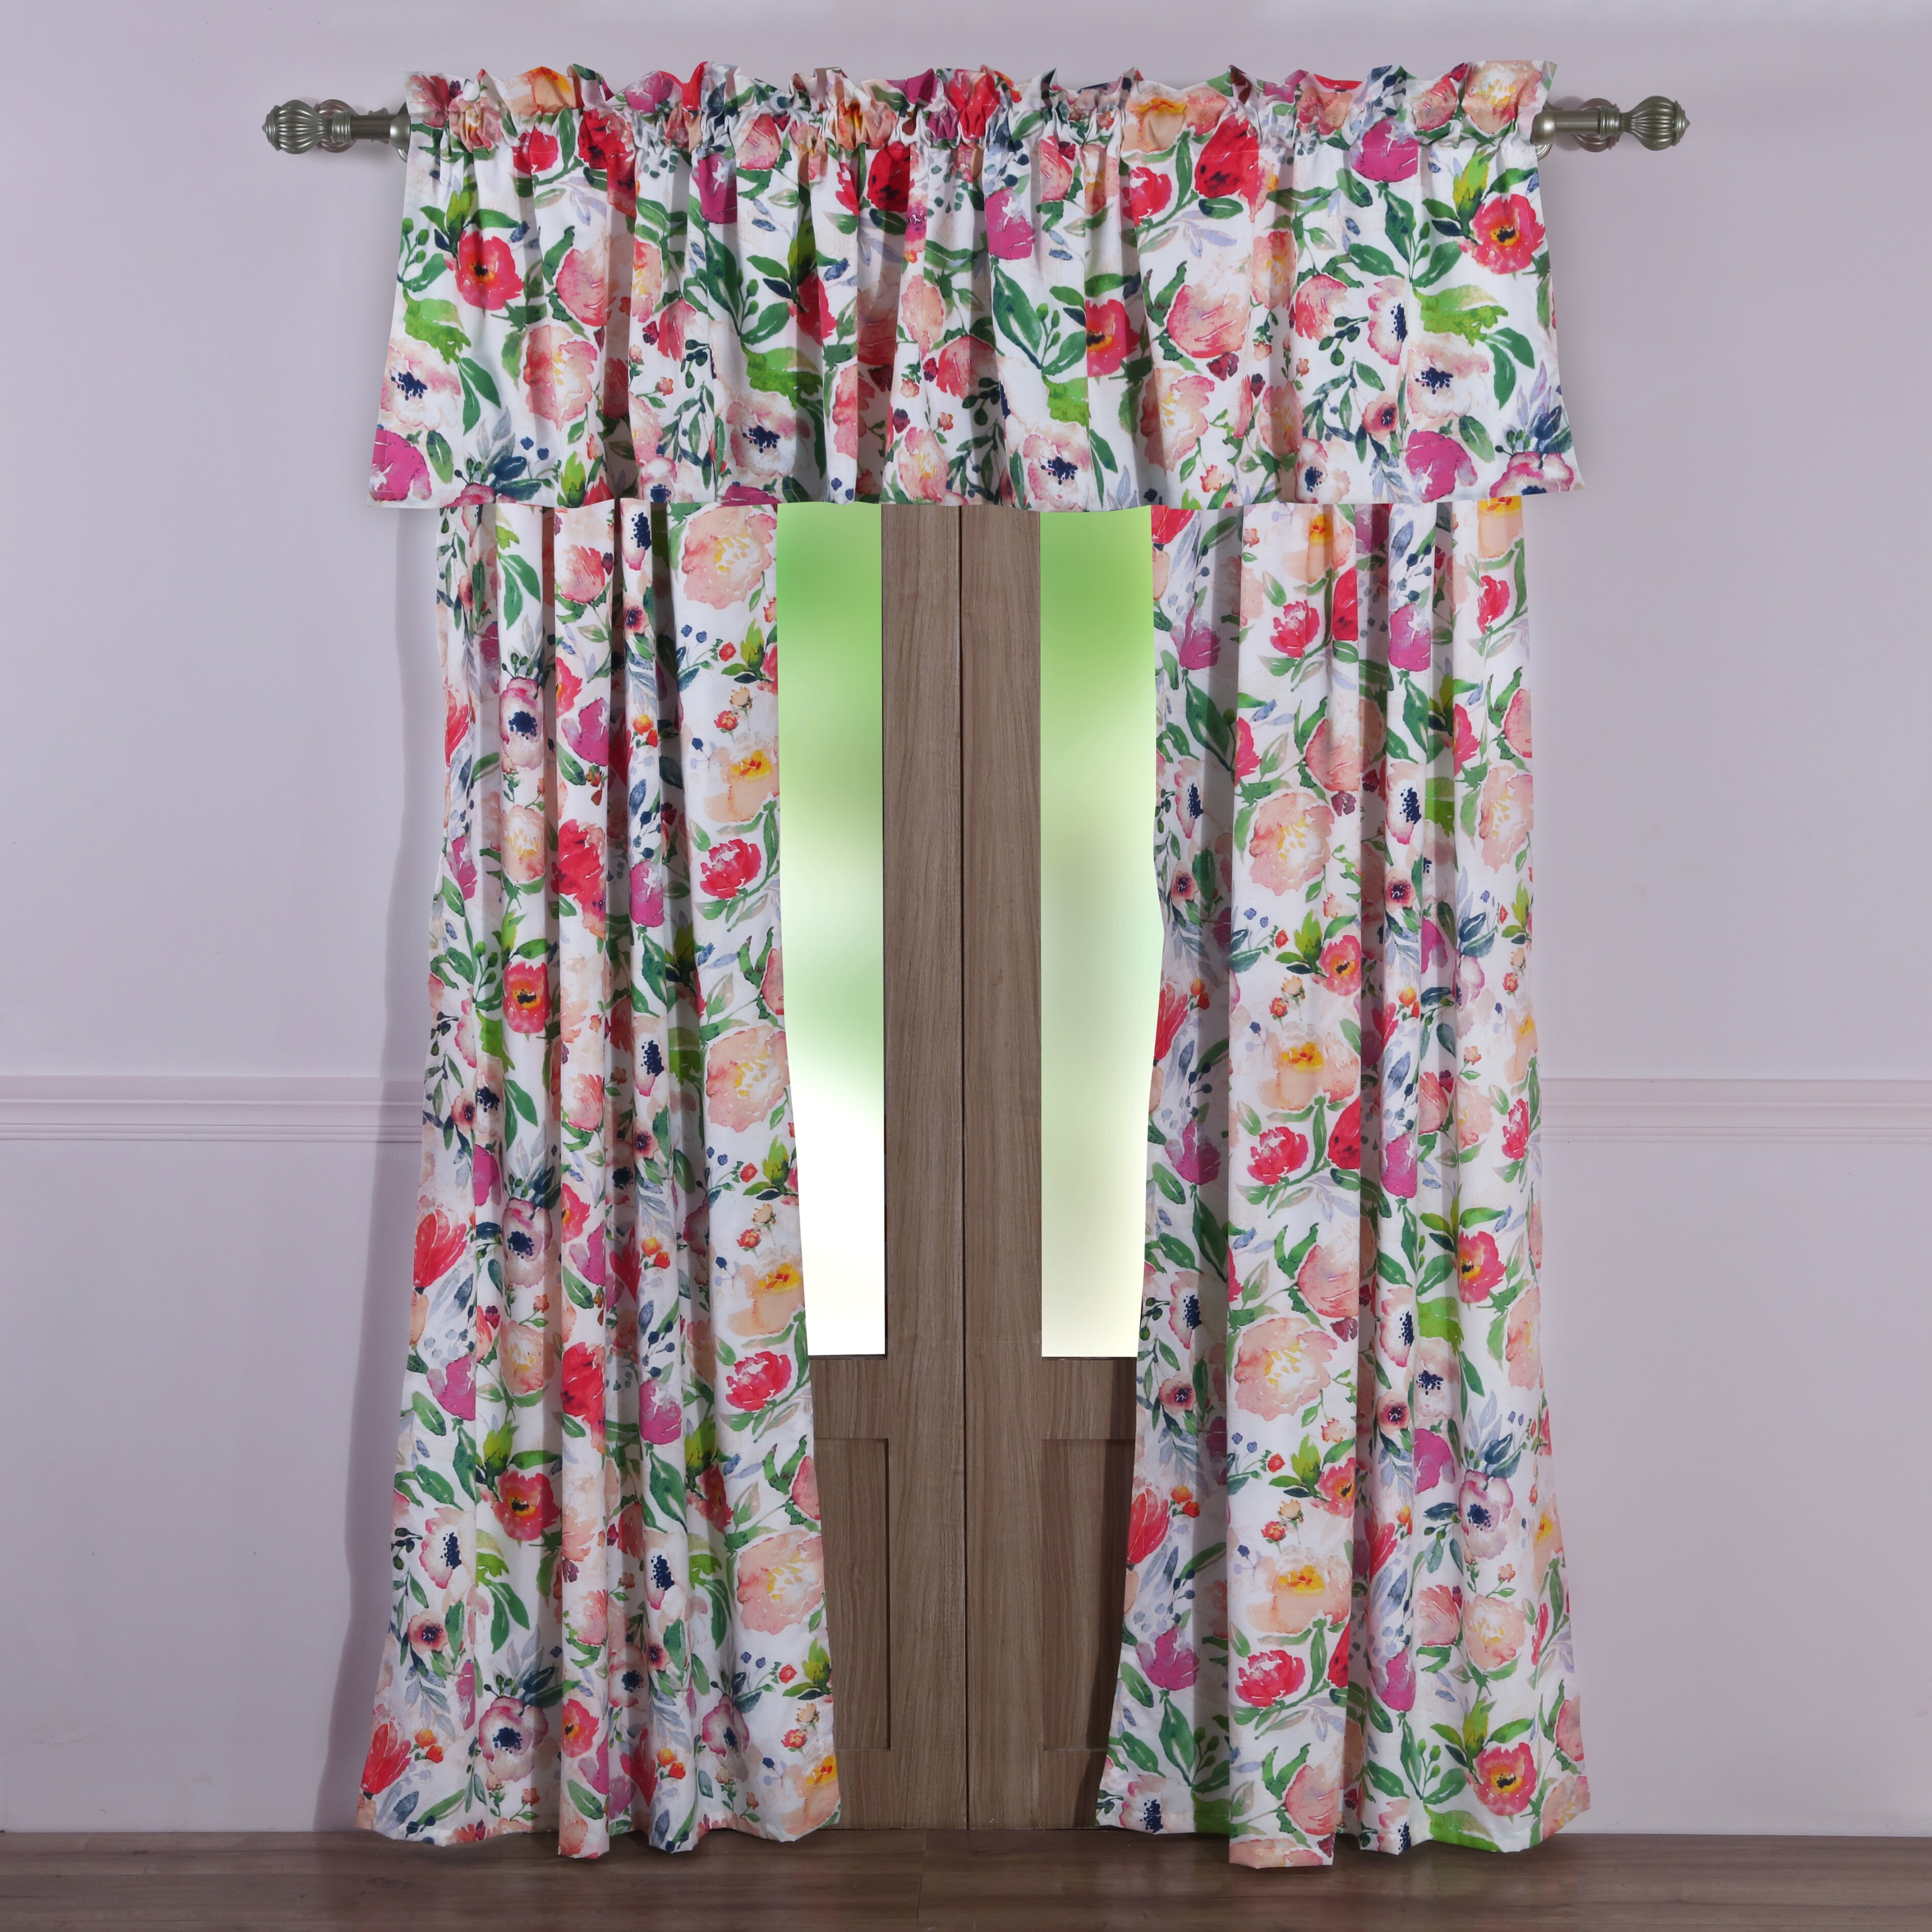 Ludington Floral Semi Sheer Rod Pocket Curtain Panels Inside Dolores Room Darkening Floral Curtain Panel Pairs (View 19 of 20)